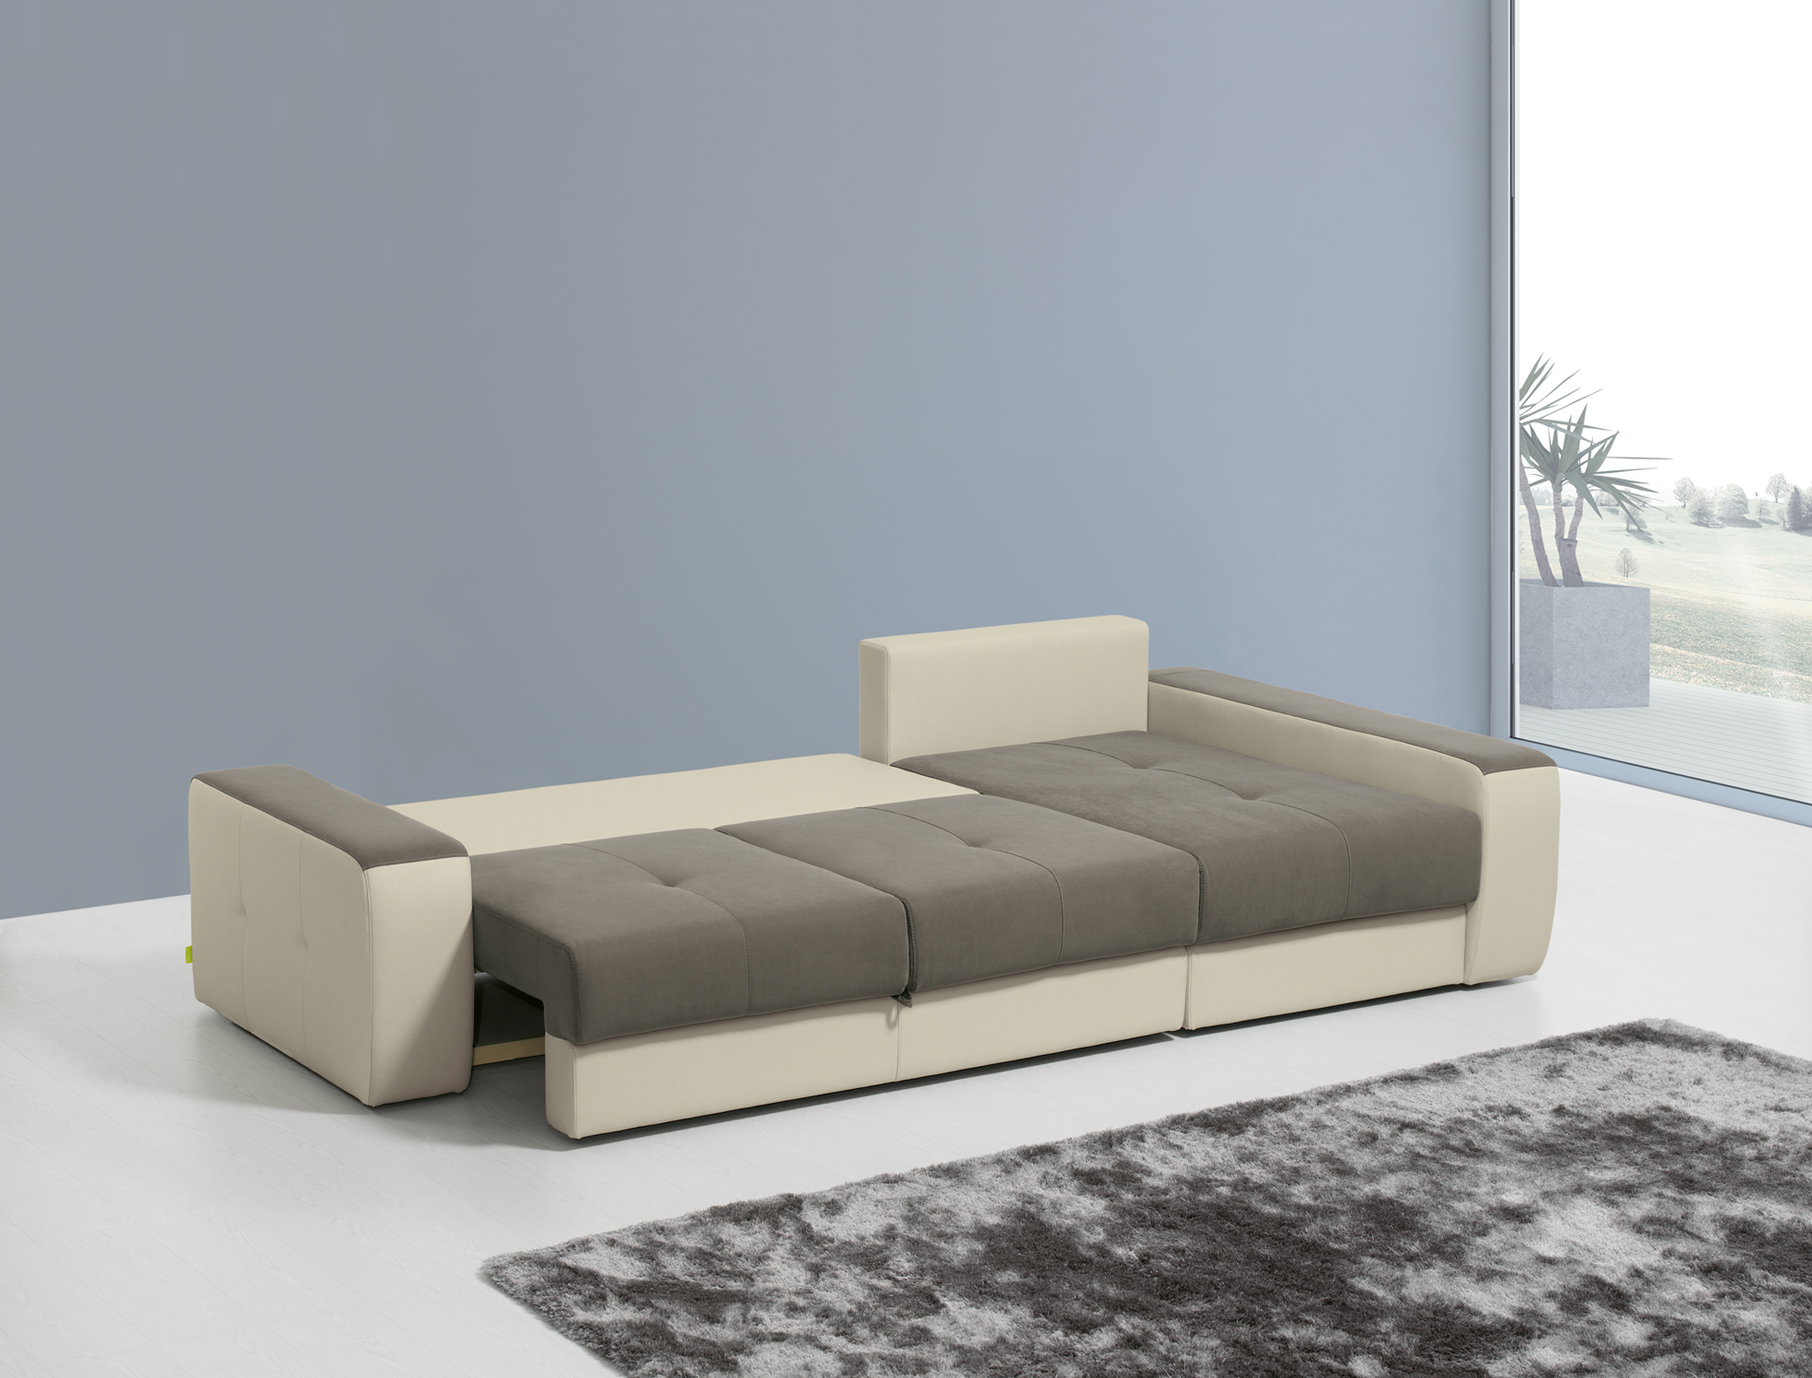 Sof cama lucho chaise long mundo do sof for Mundo sofas